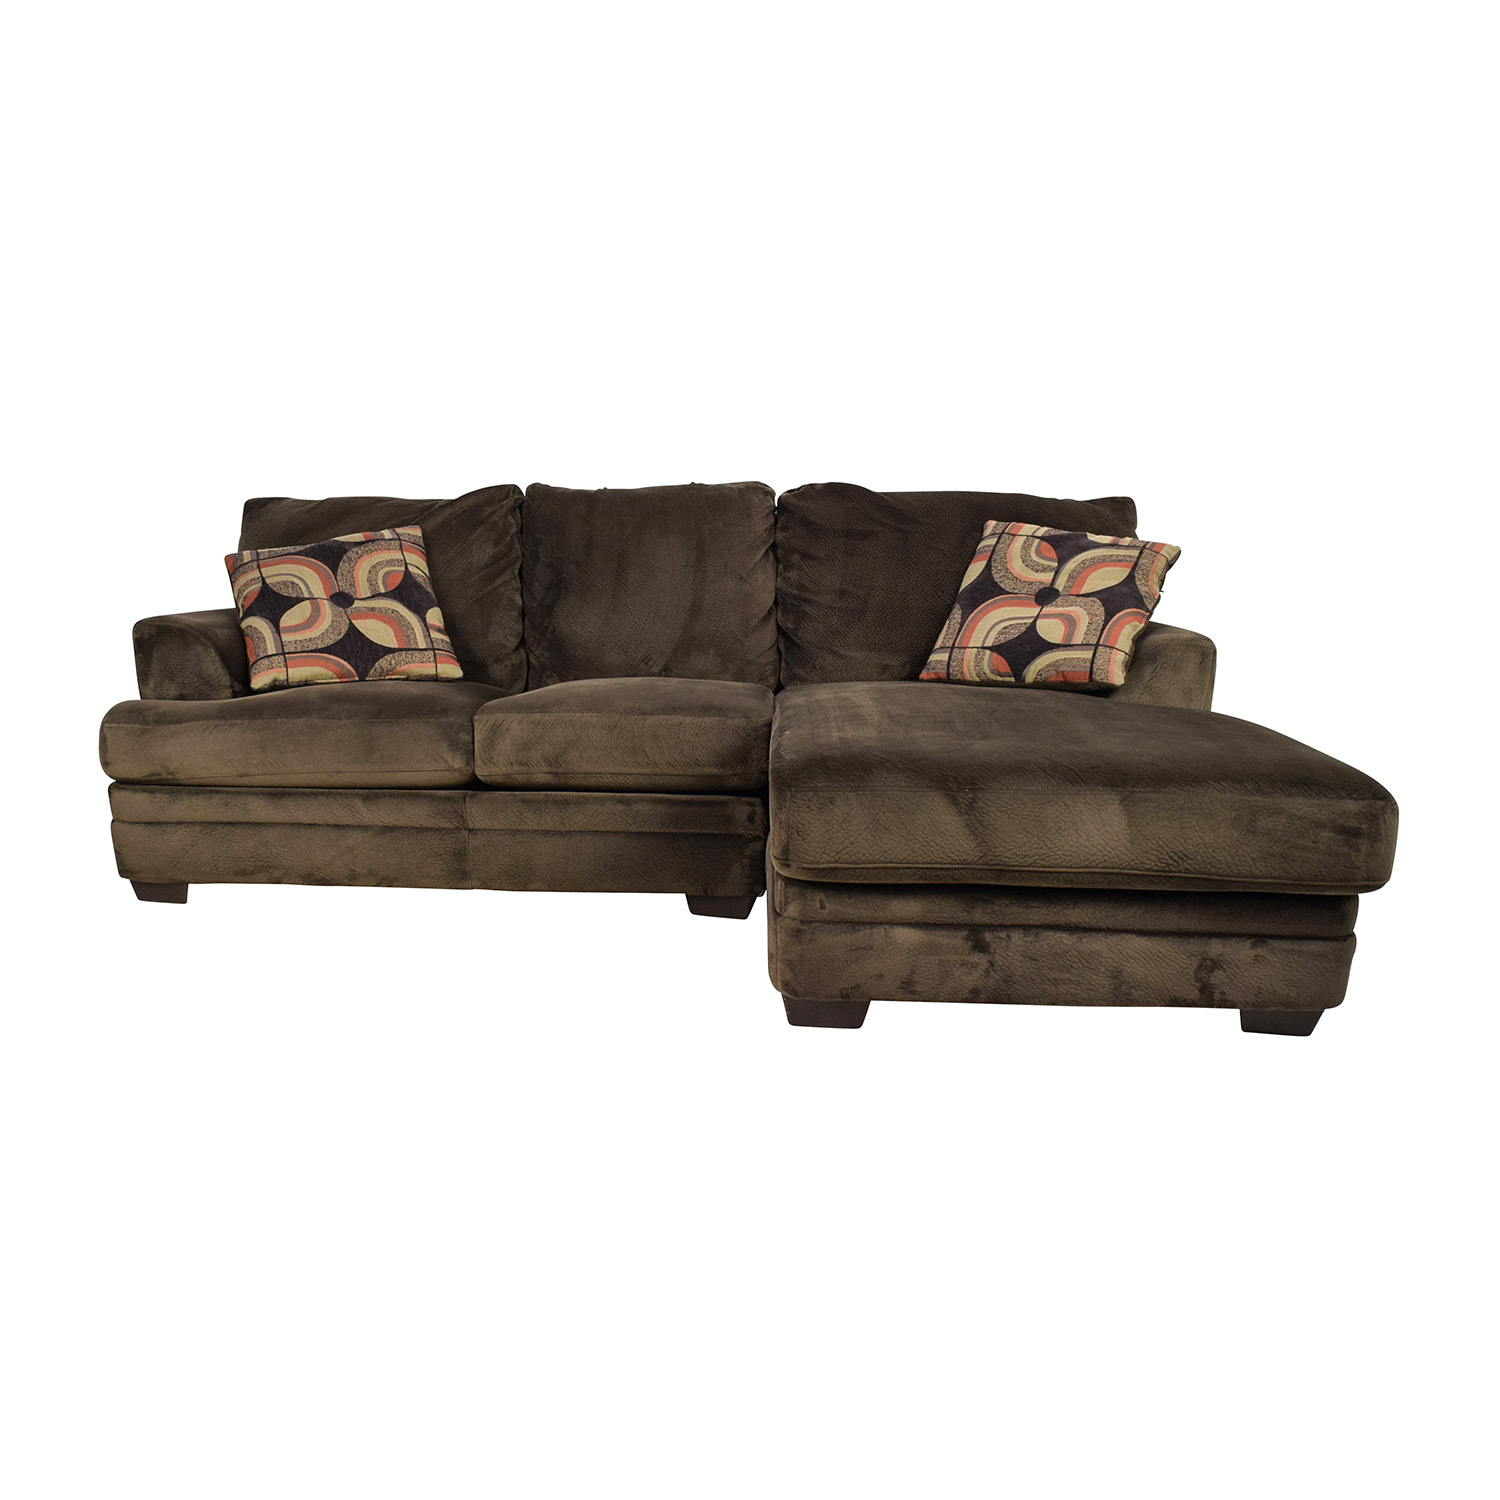 Bobs Furniture Bobs Furniture Charisma Sectional Sofa Sectionals